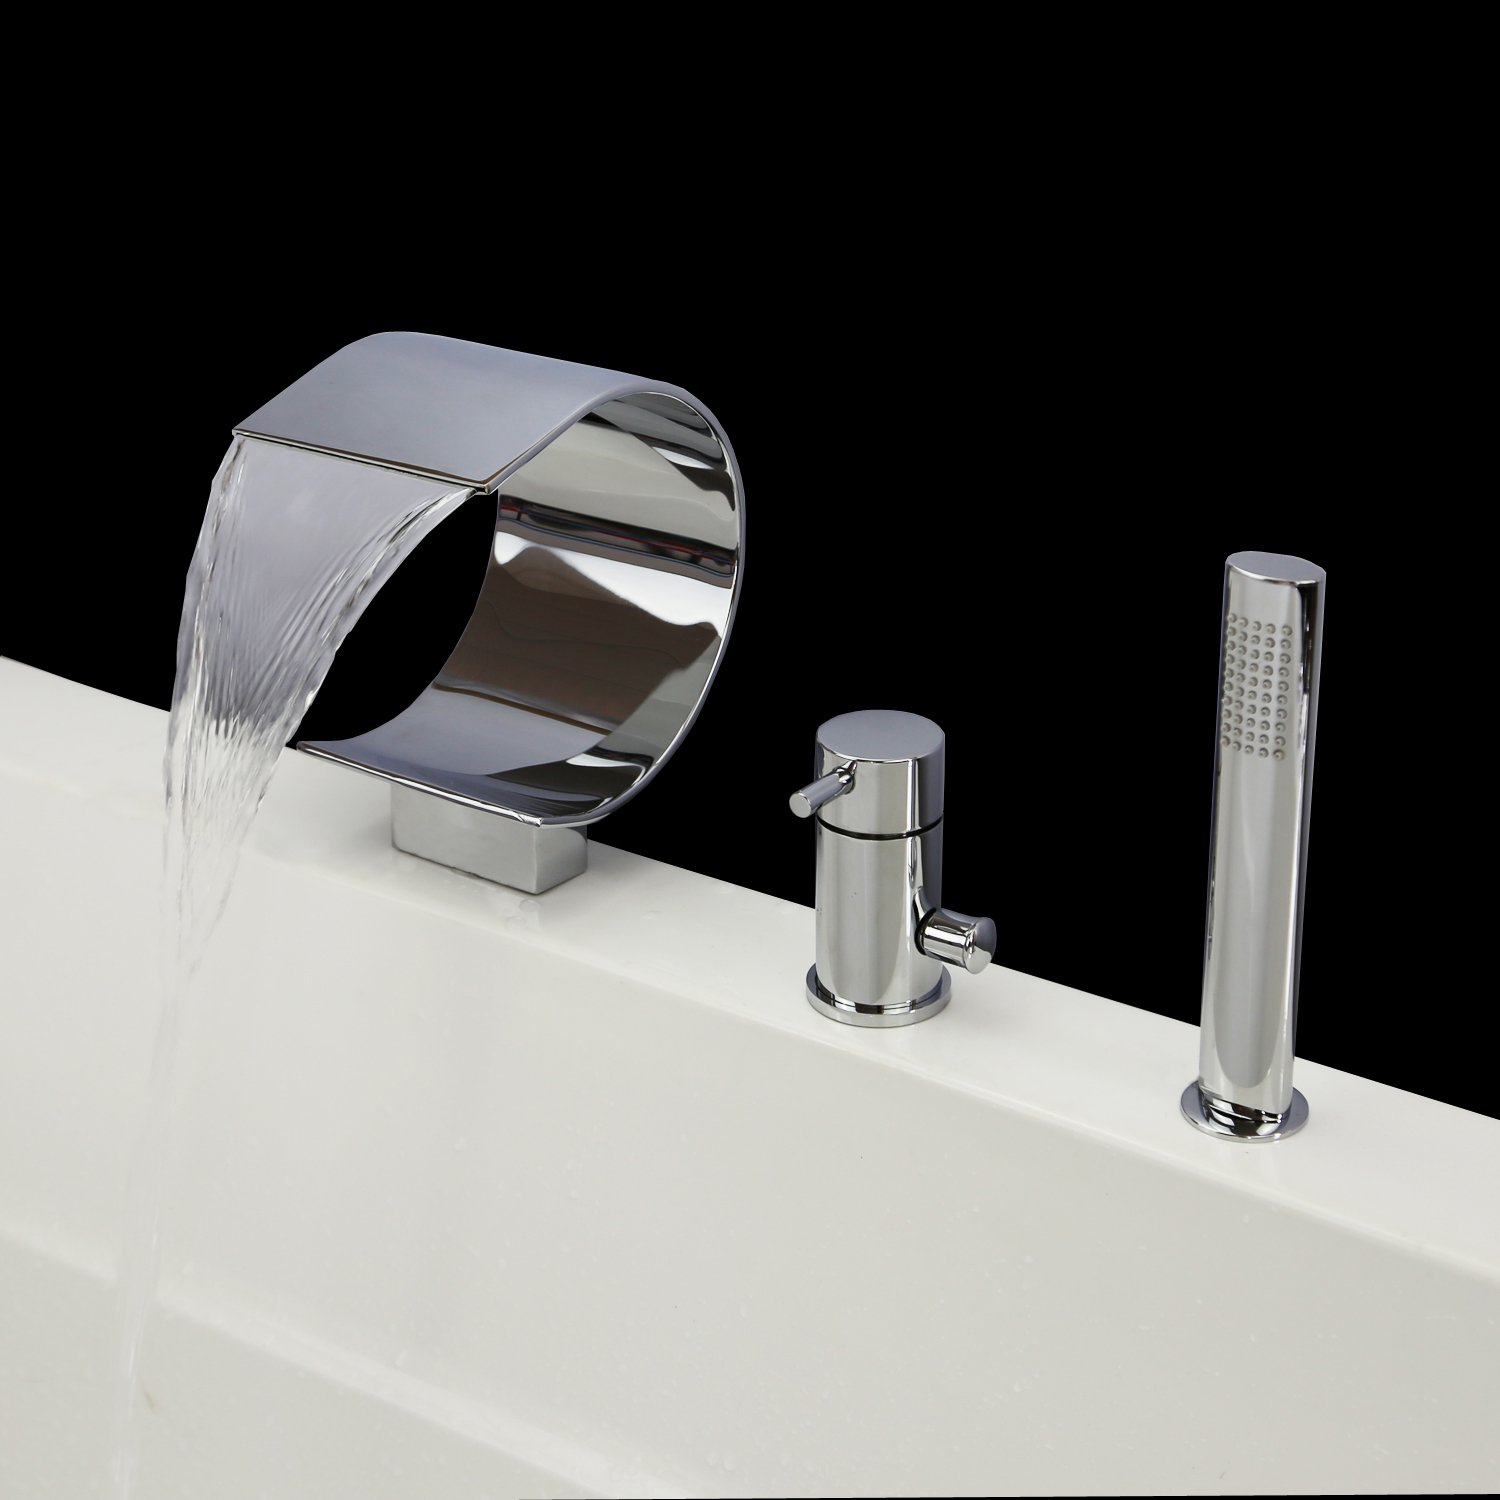 Widespread Waterfall Bathroom Bathtub Sink Faucet Plunge Bath Faucet ...